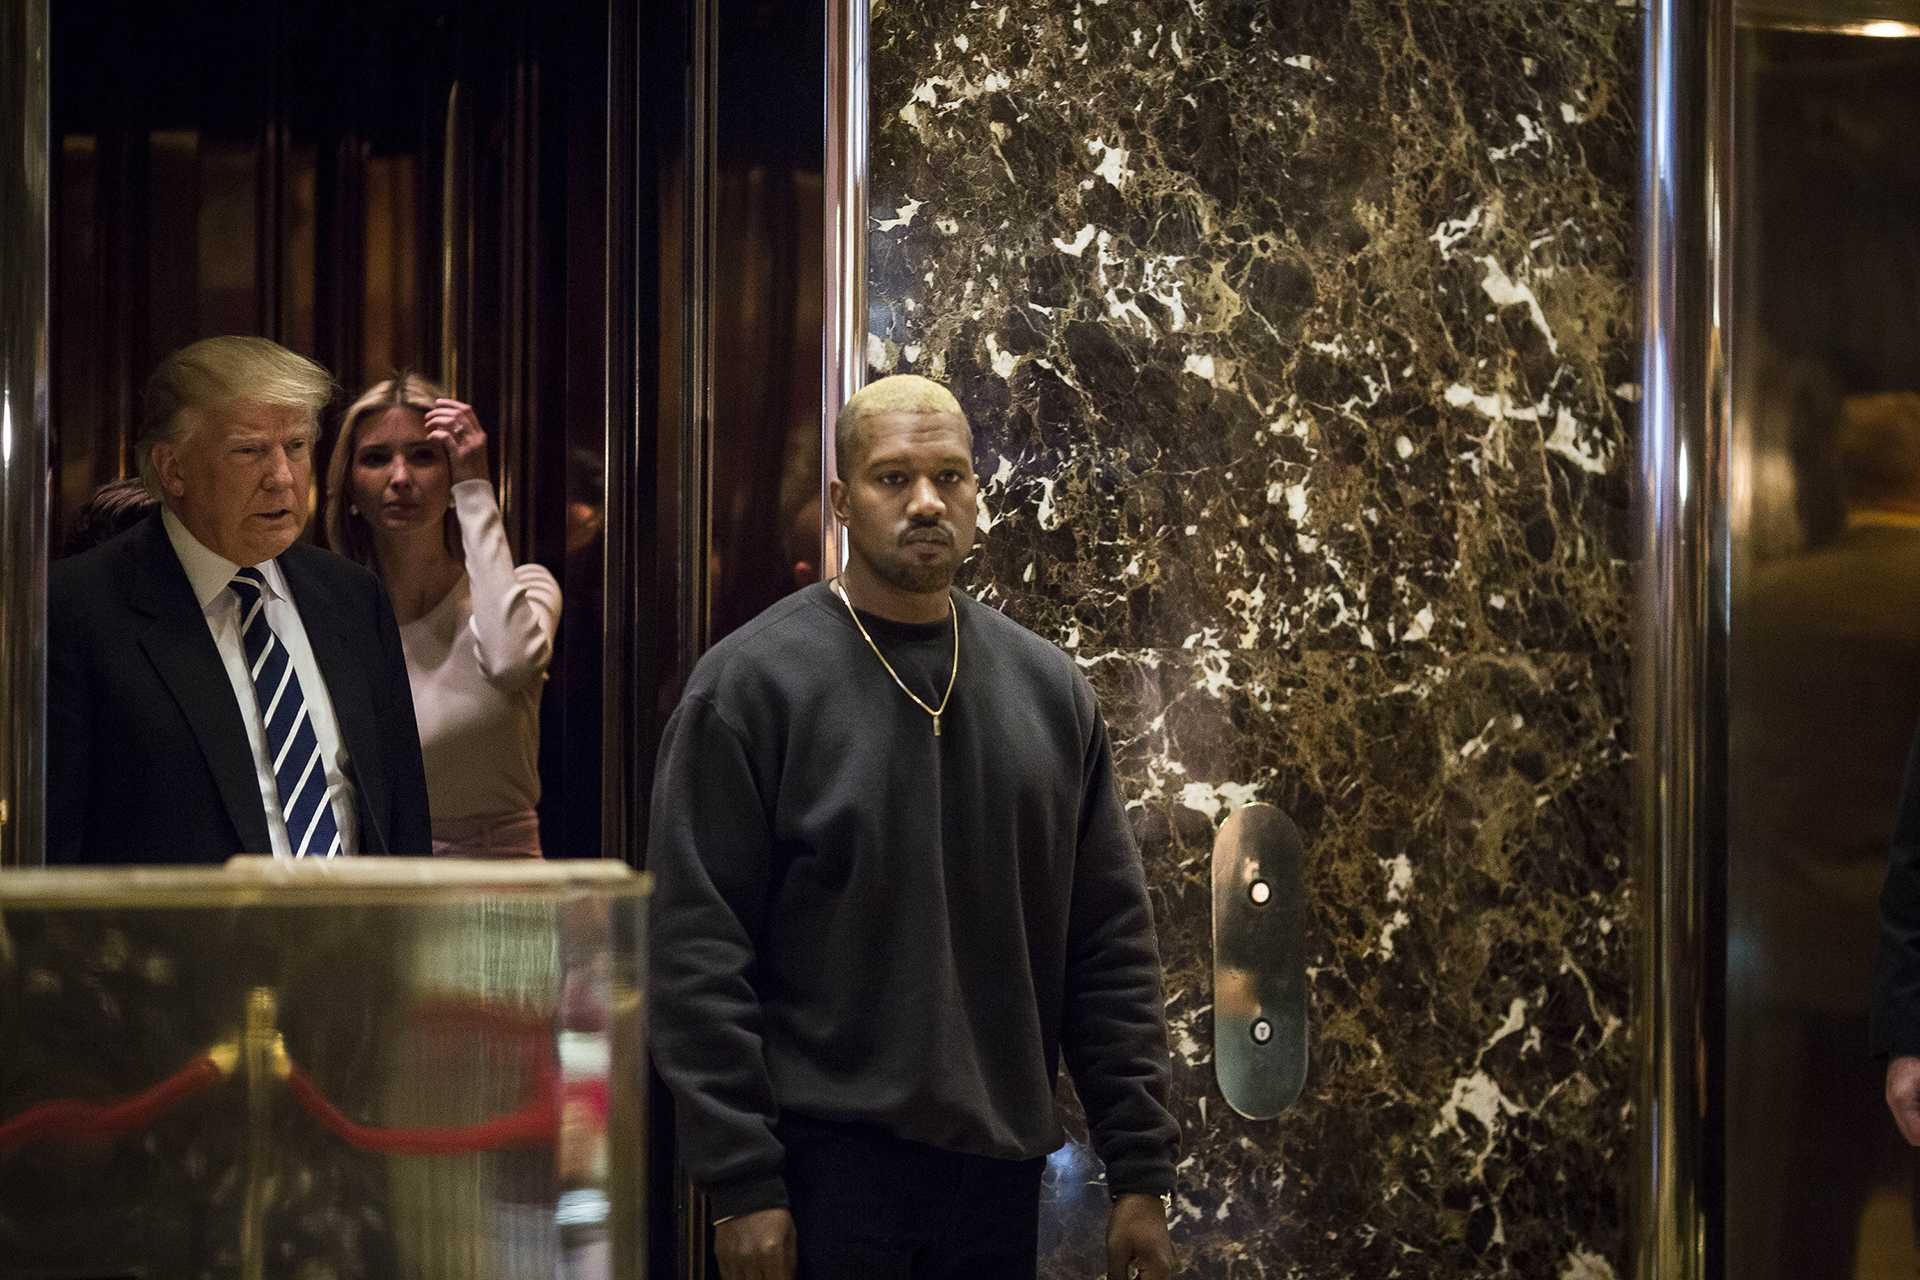 U.S. President-elect Donald J. Trump and Musician Kanye West pose for photographers in the lobby of Trump Tower on Dec. 13, 2016 in Manhattan, New York. (Photo by John Taggart/Sipa USA/TNS)